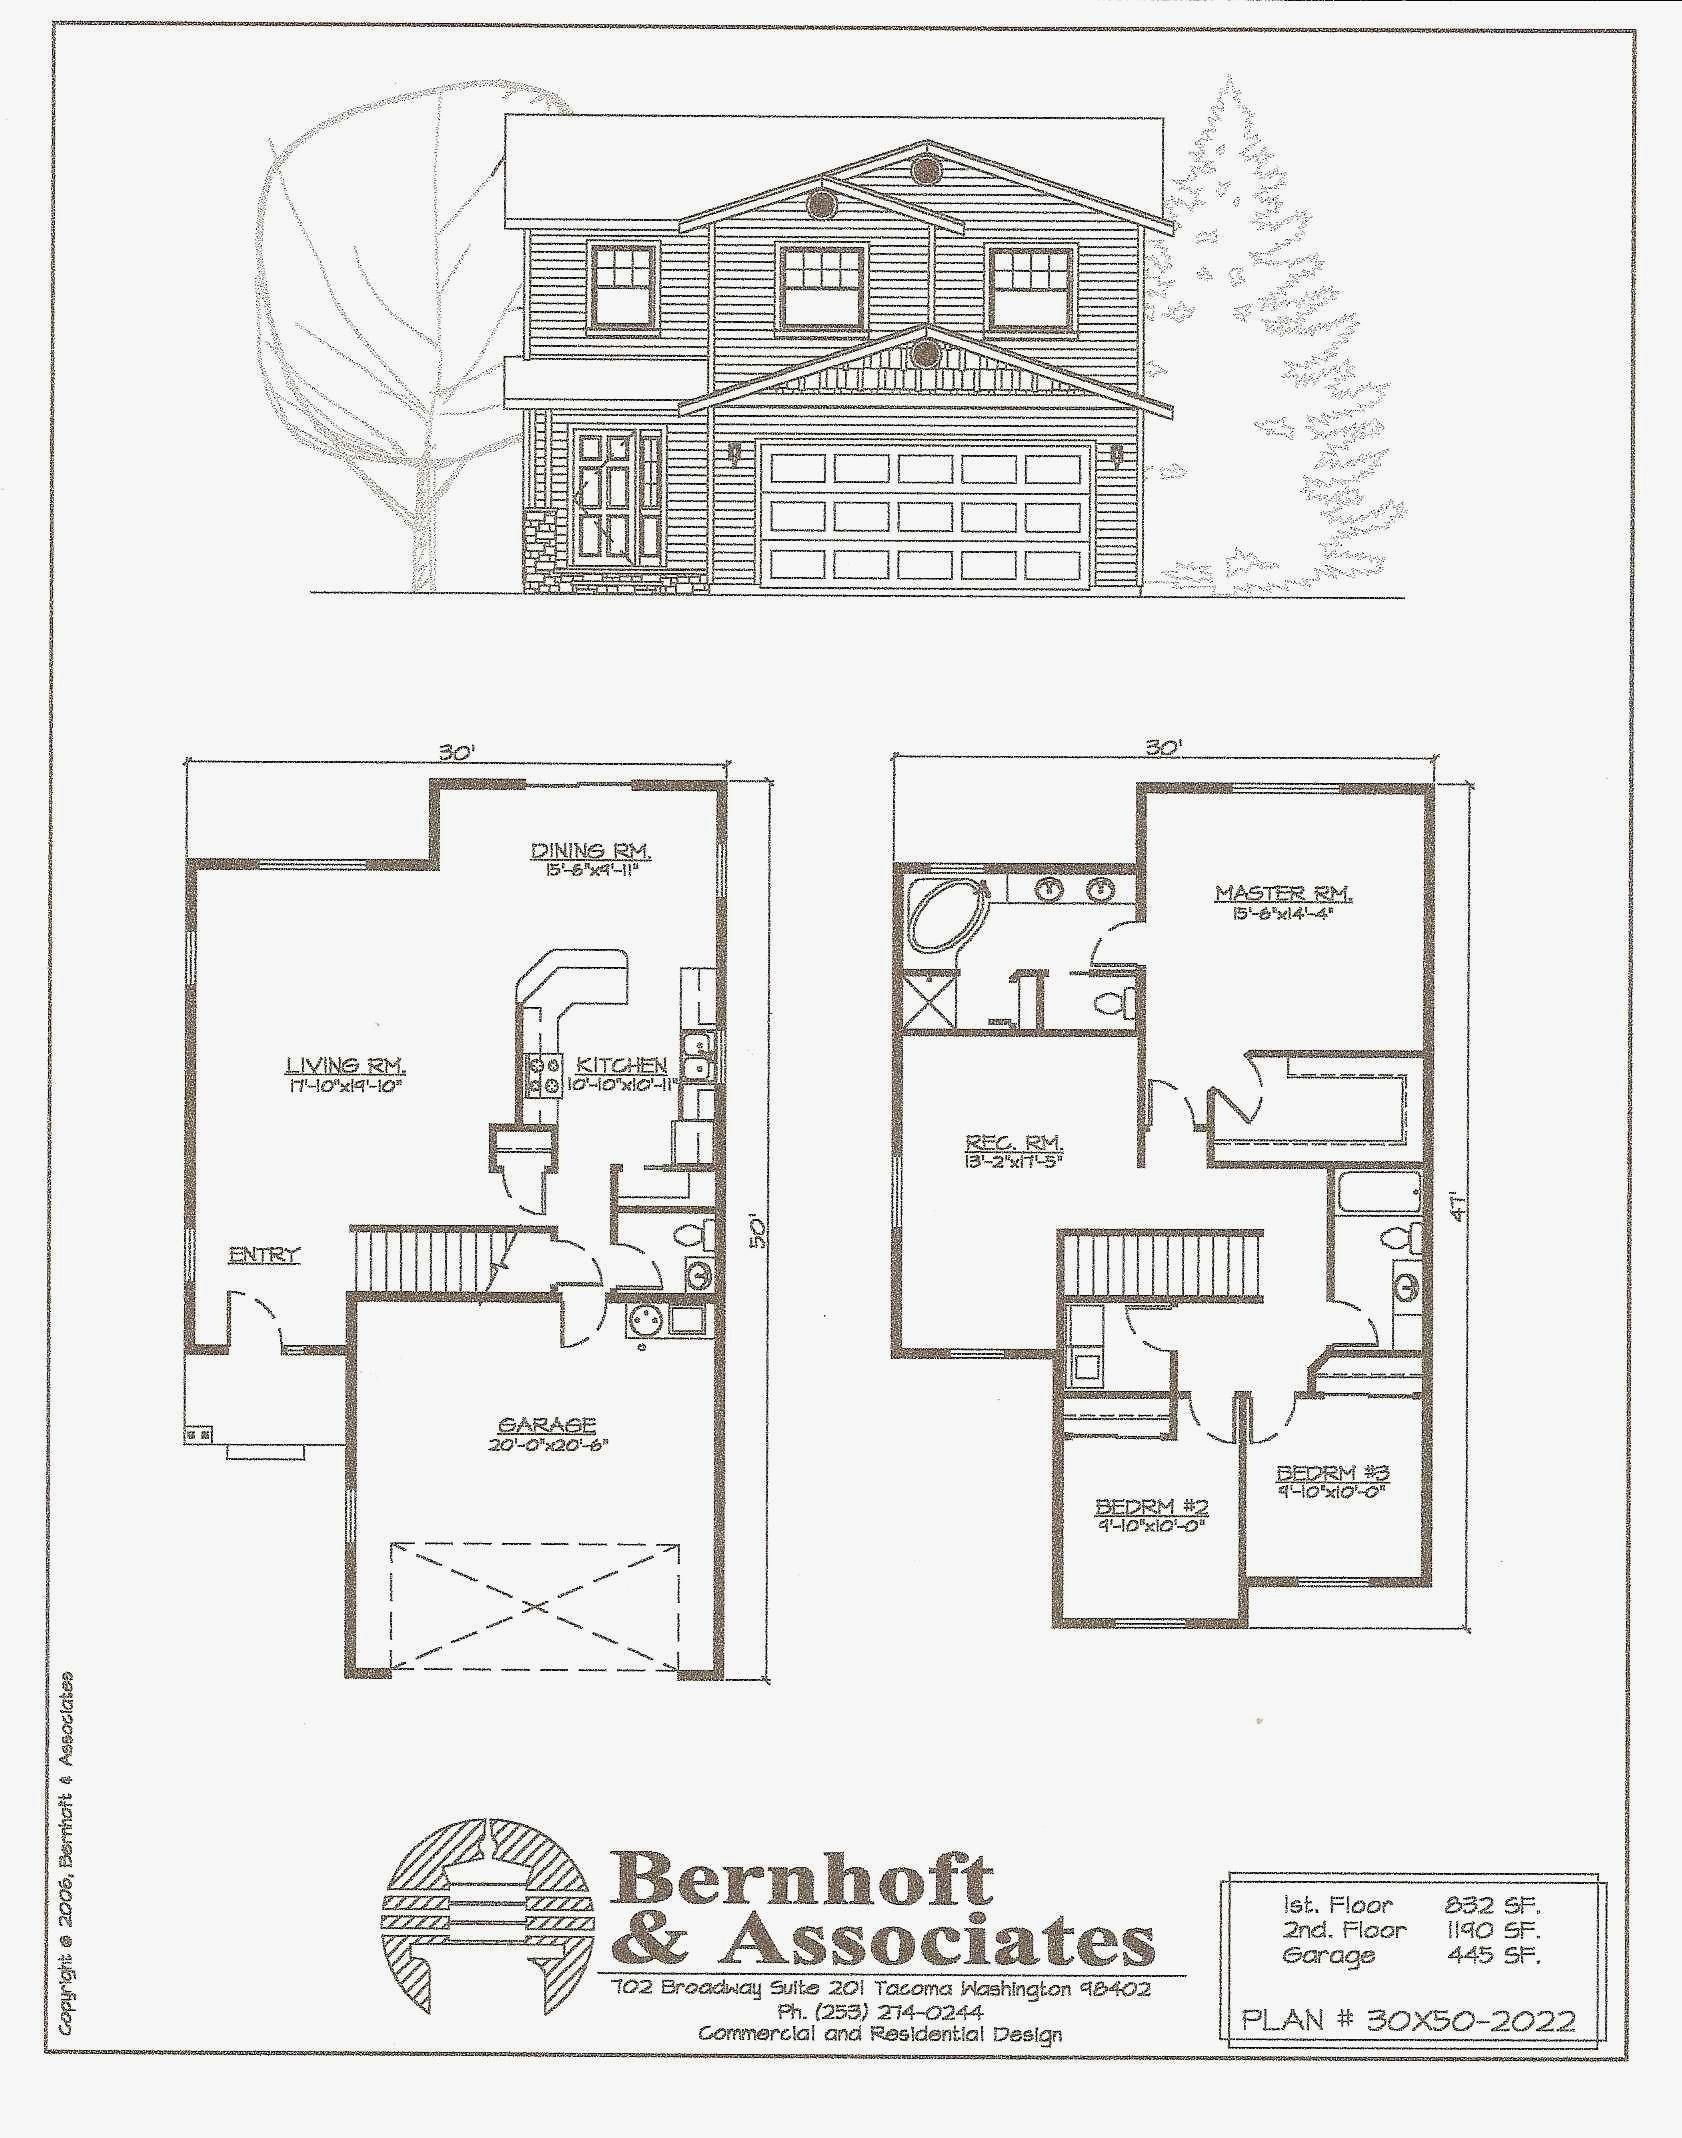 24 How To Draw Your Own House Plans Home Decor Interior Floor Plan Design Simple Floor Plans Simple House Design